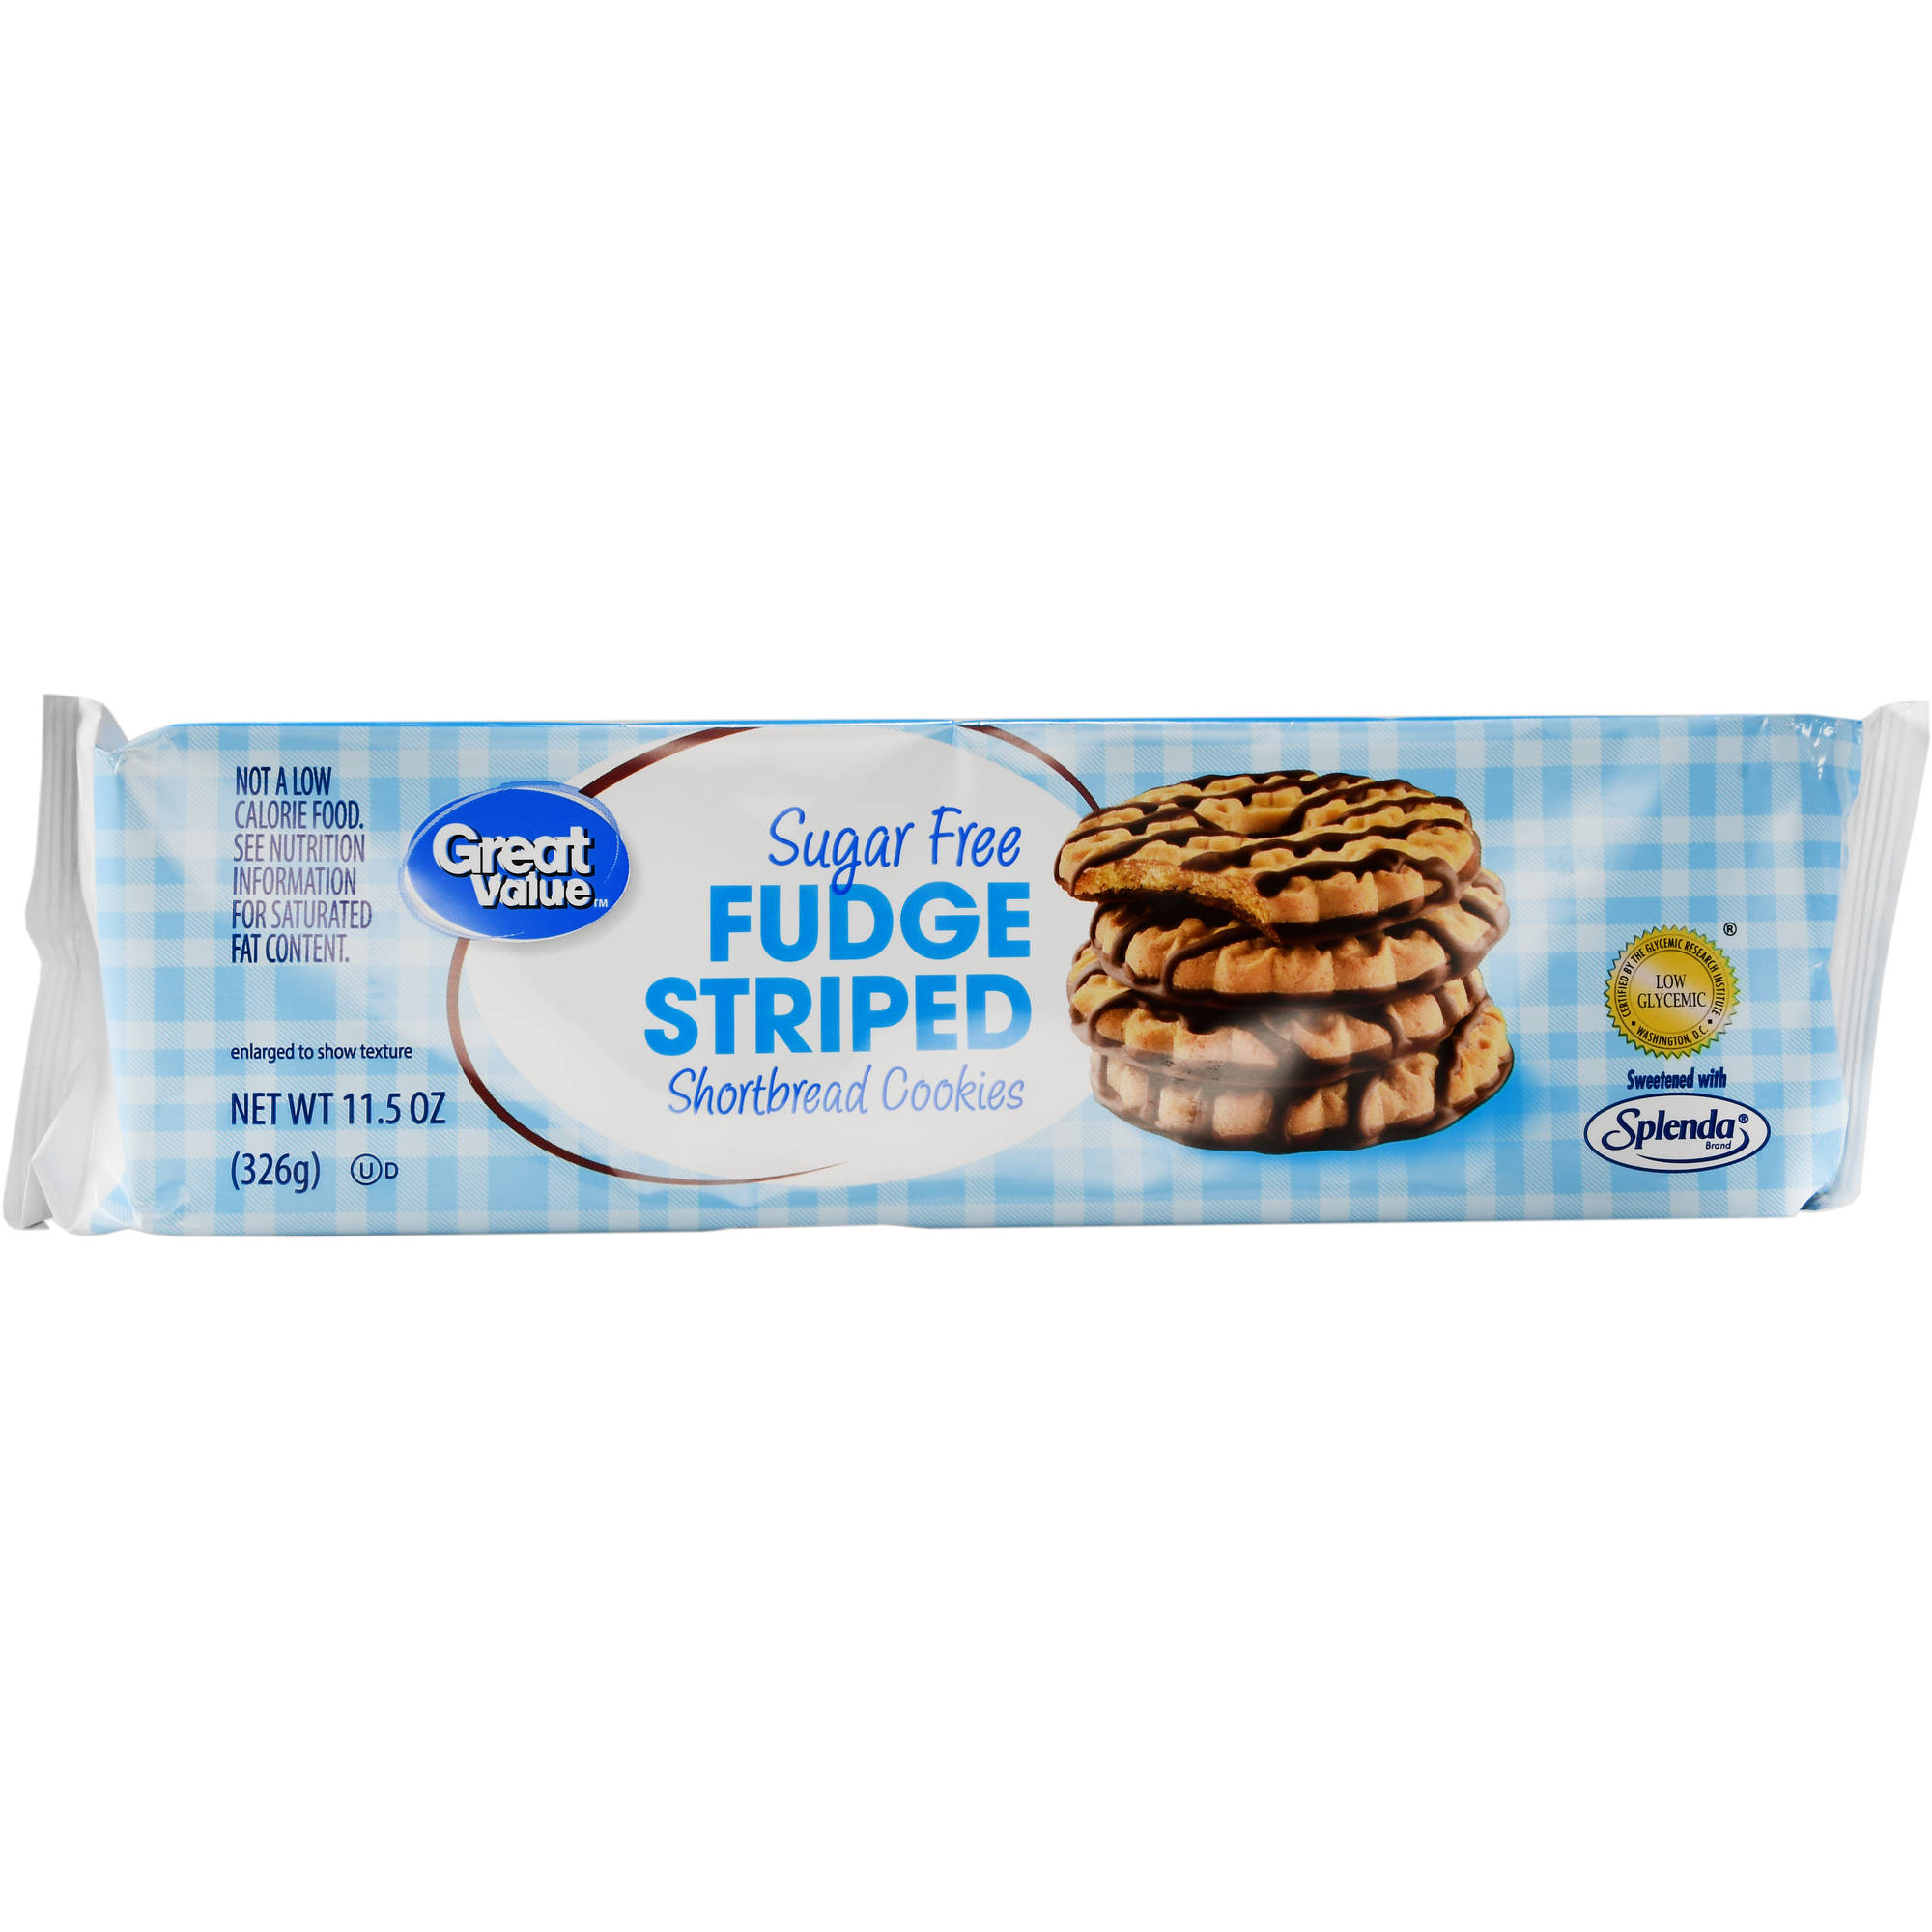 Great Value Sugar Free Fudge Striped Shortbread Cookies, 11.5 oz by Wal-Mart Stores, Inc.